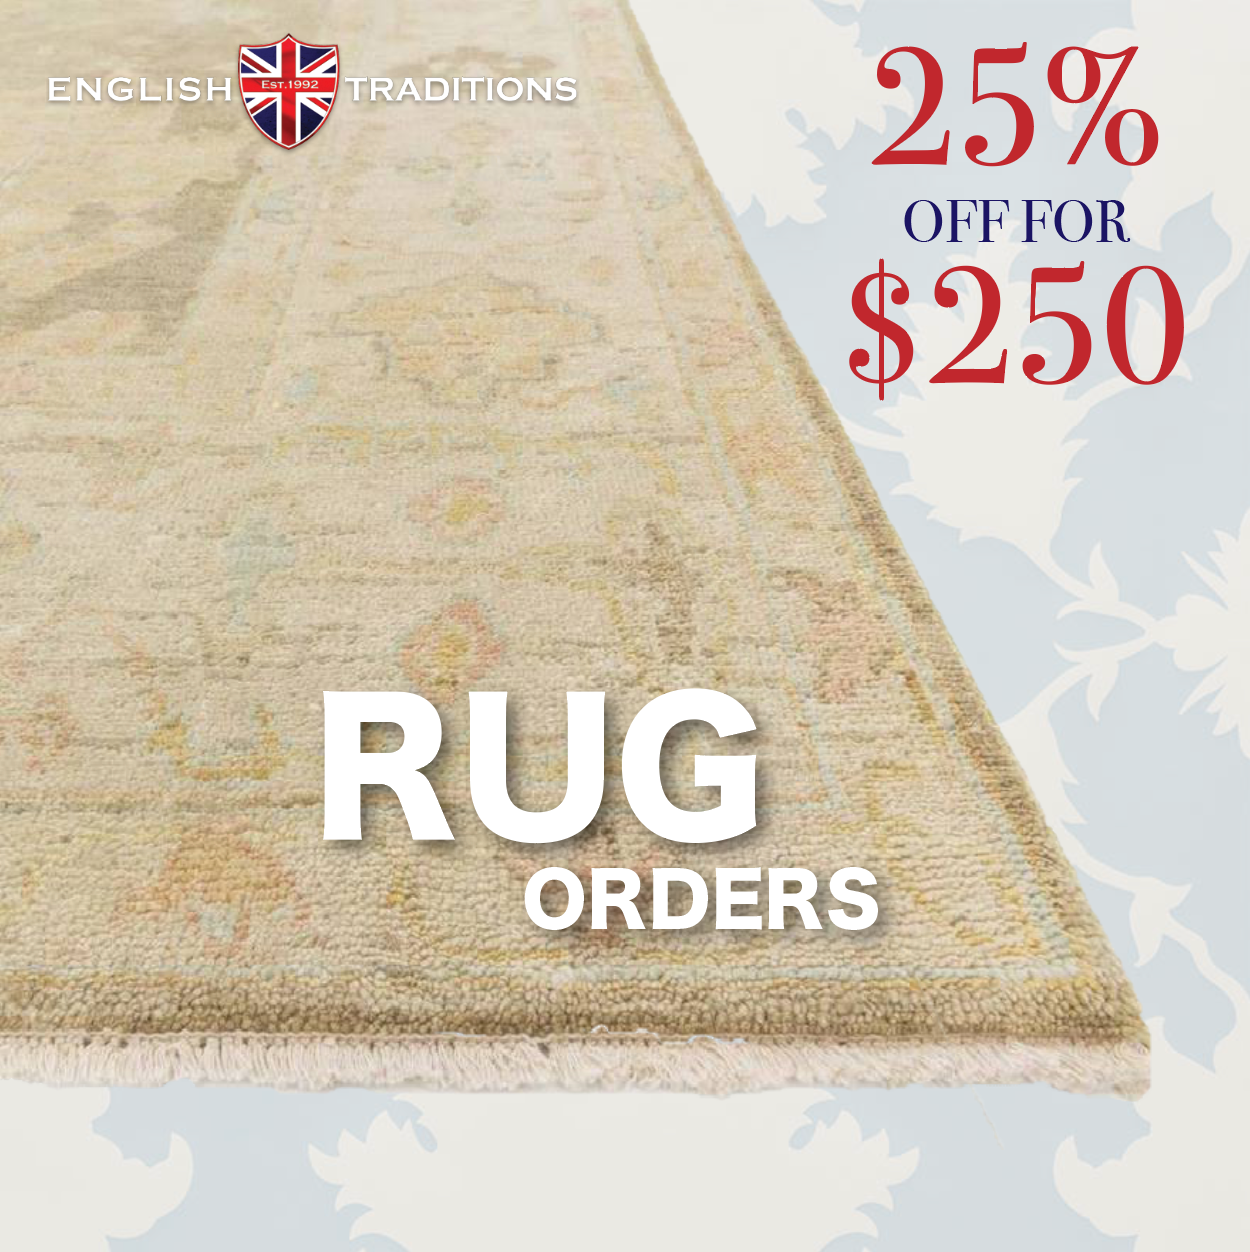 Rug Voucher - Buy Now Save Later